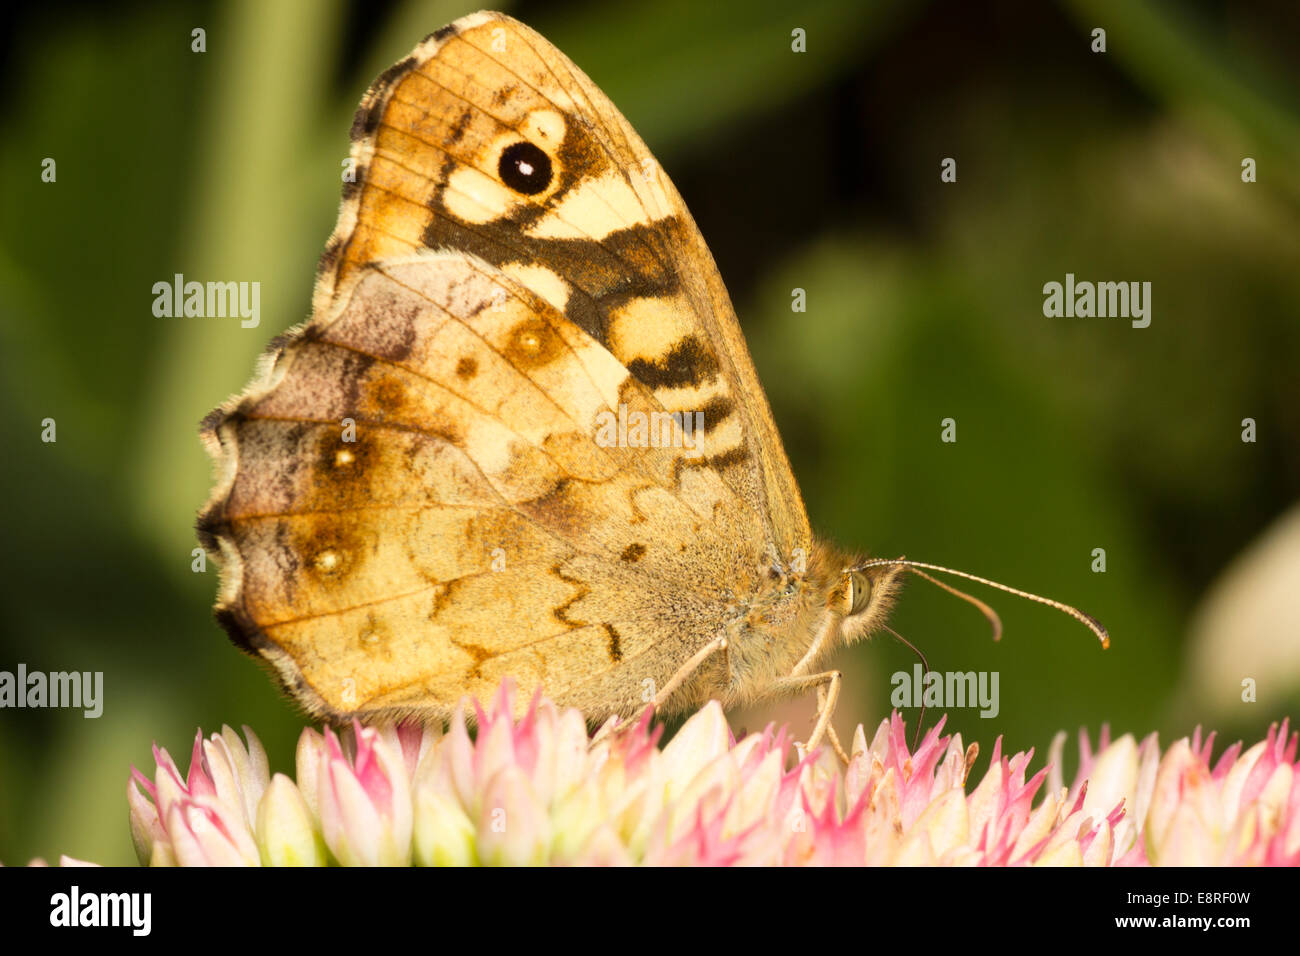 Adult female Speckled Wood butterfly, Pararge aegeria, feeding on nectar of Sedum spectabile in a Plymouth garden. - Stock Image